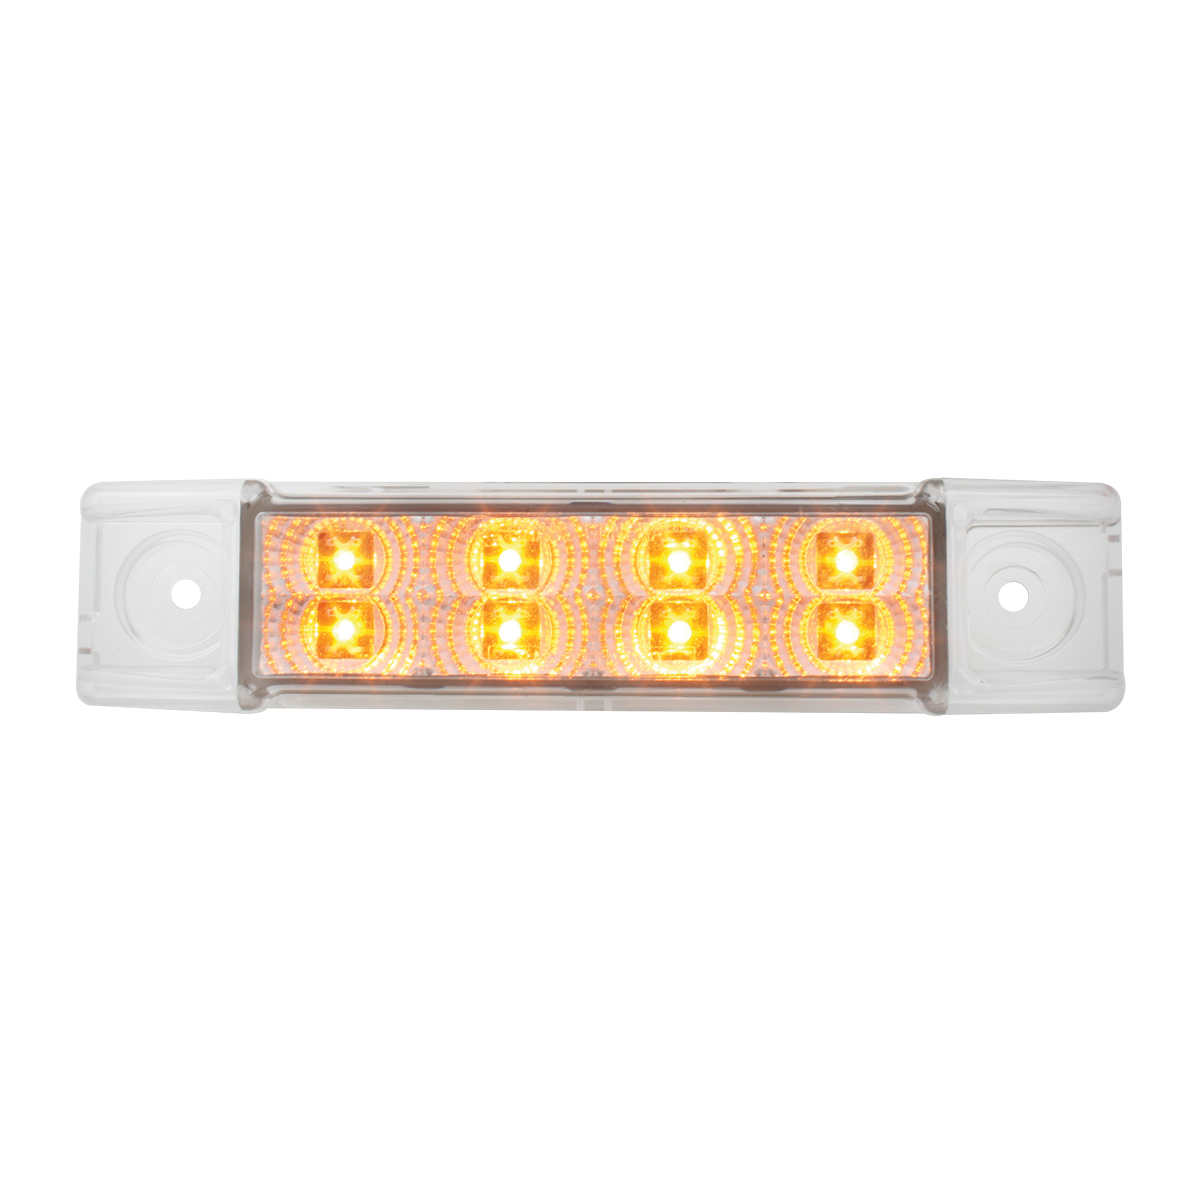 75181 Rectangular Spyder Dual Function LED Light